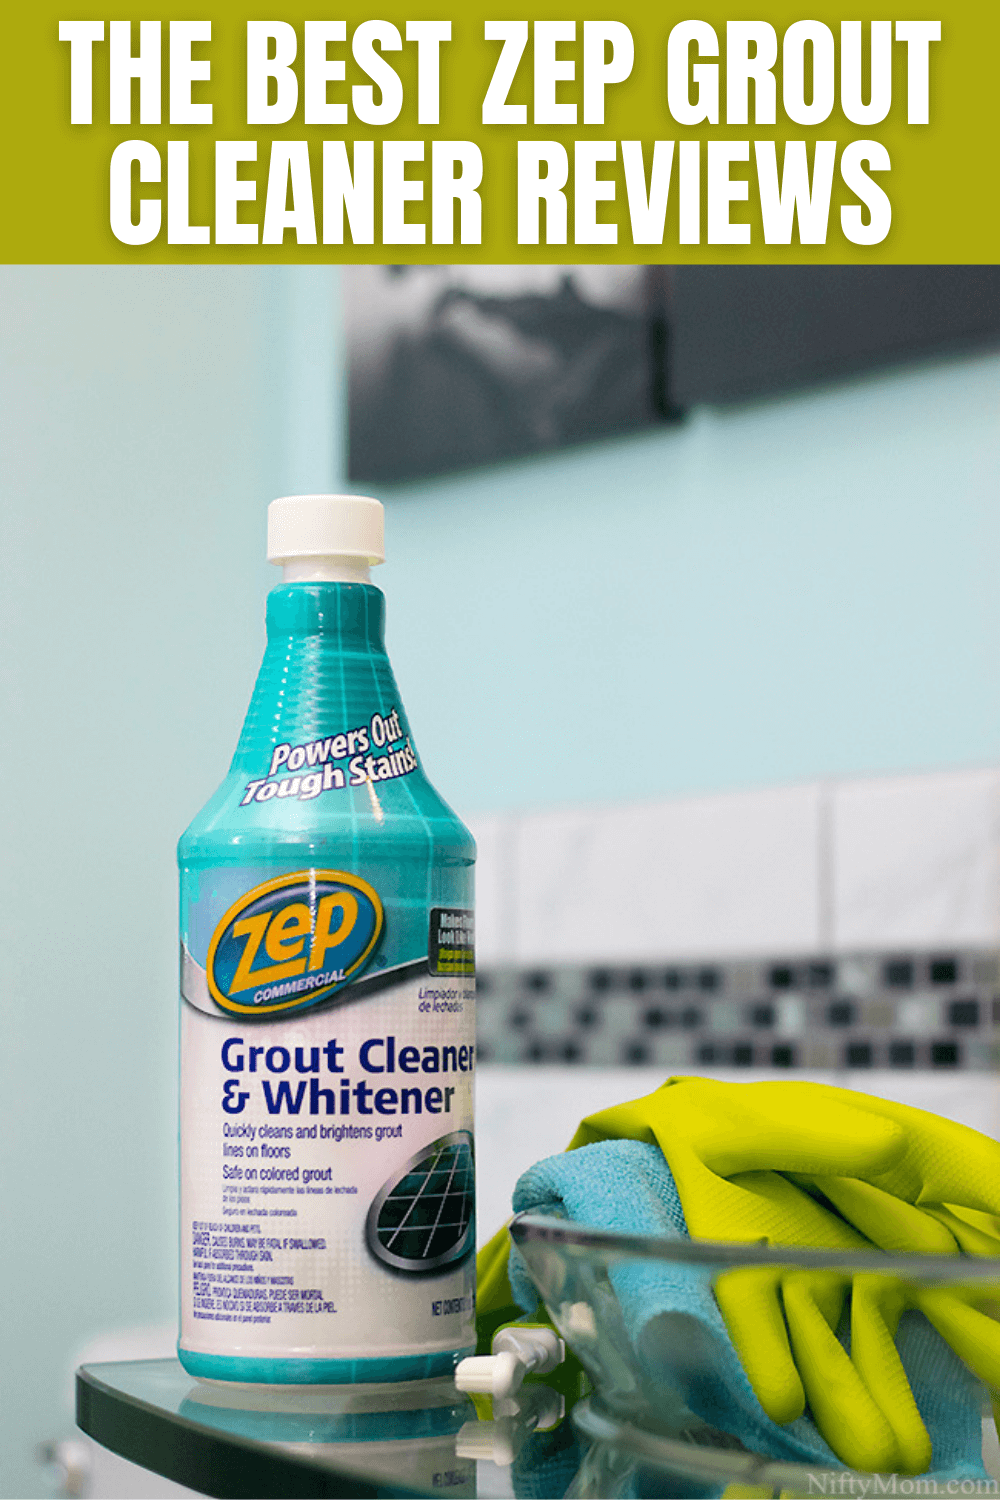 THE BEST ZEP GROUT CLEANER REVIEWS